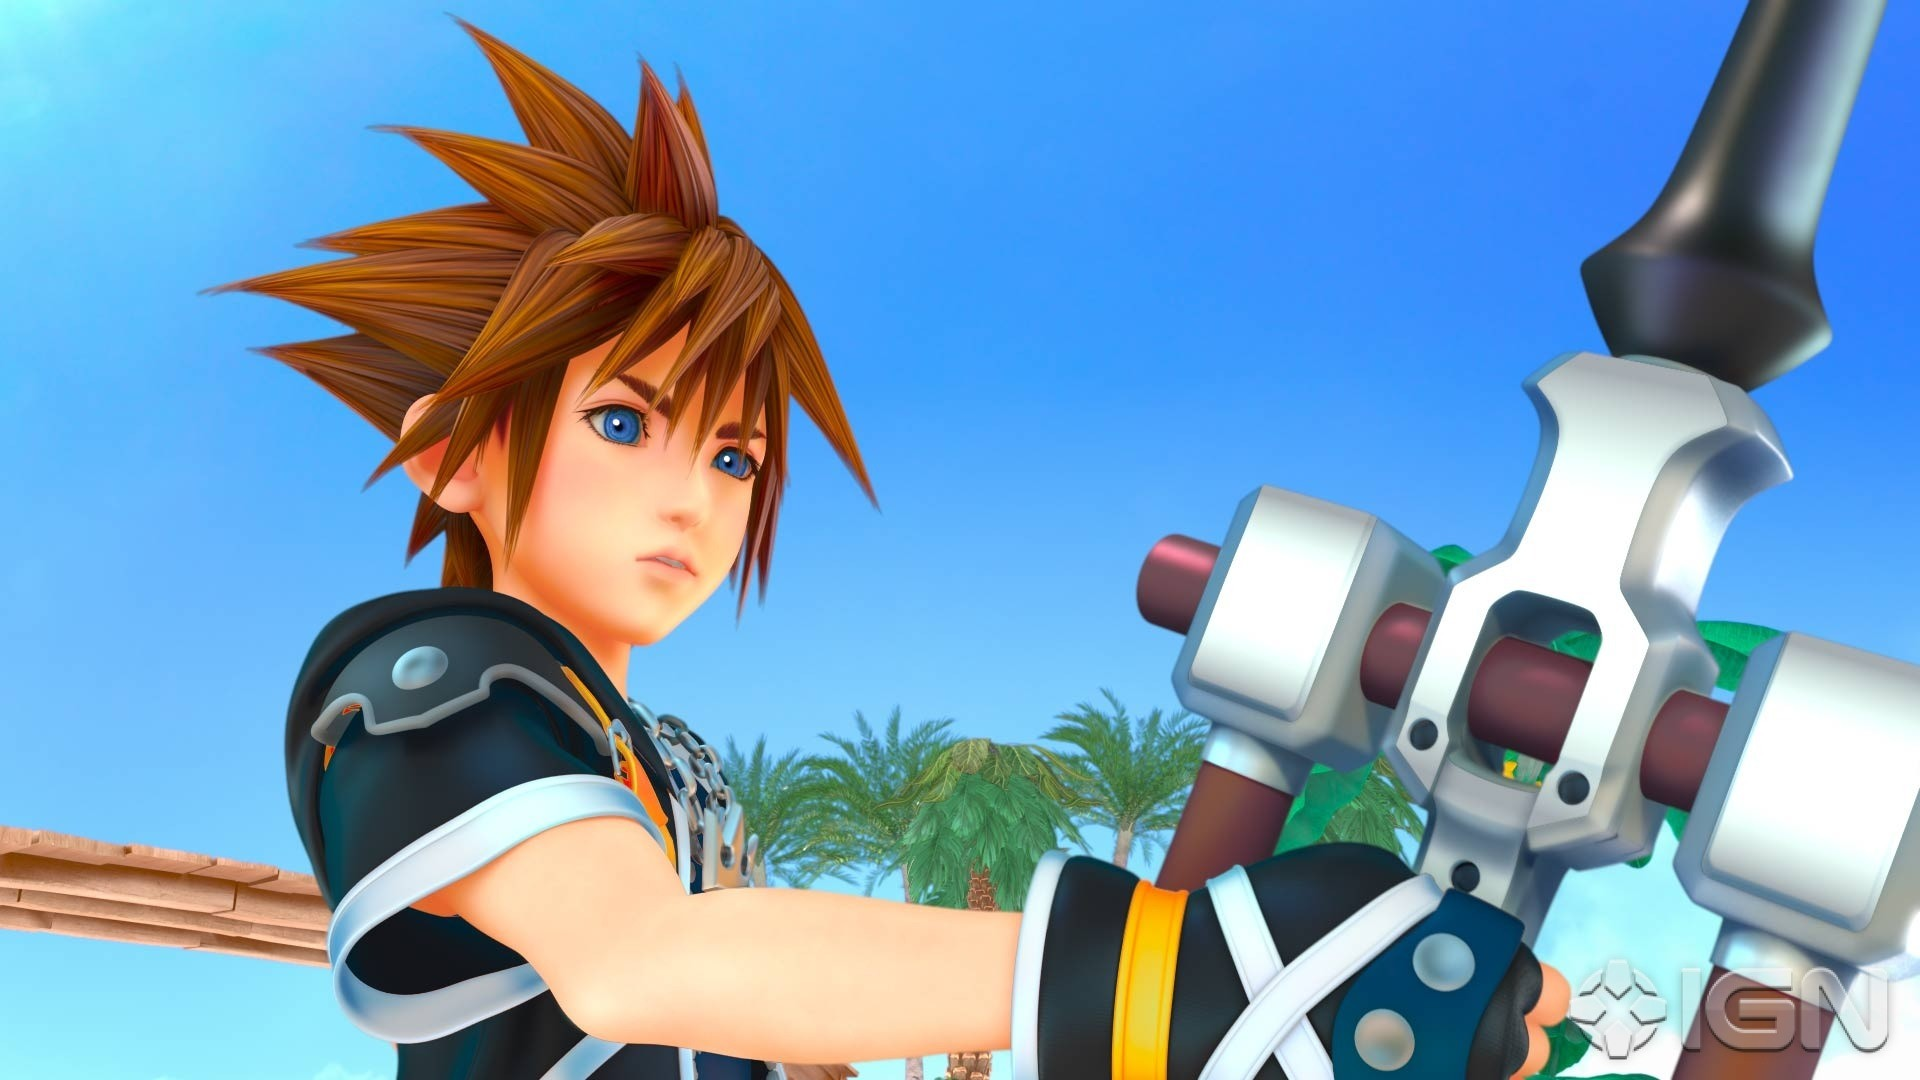 1920x1080 Kingdom Hearts 3 Screenshots, Pictures, Wallpapers - PlayStation 4 - IGN